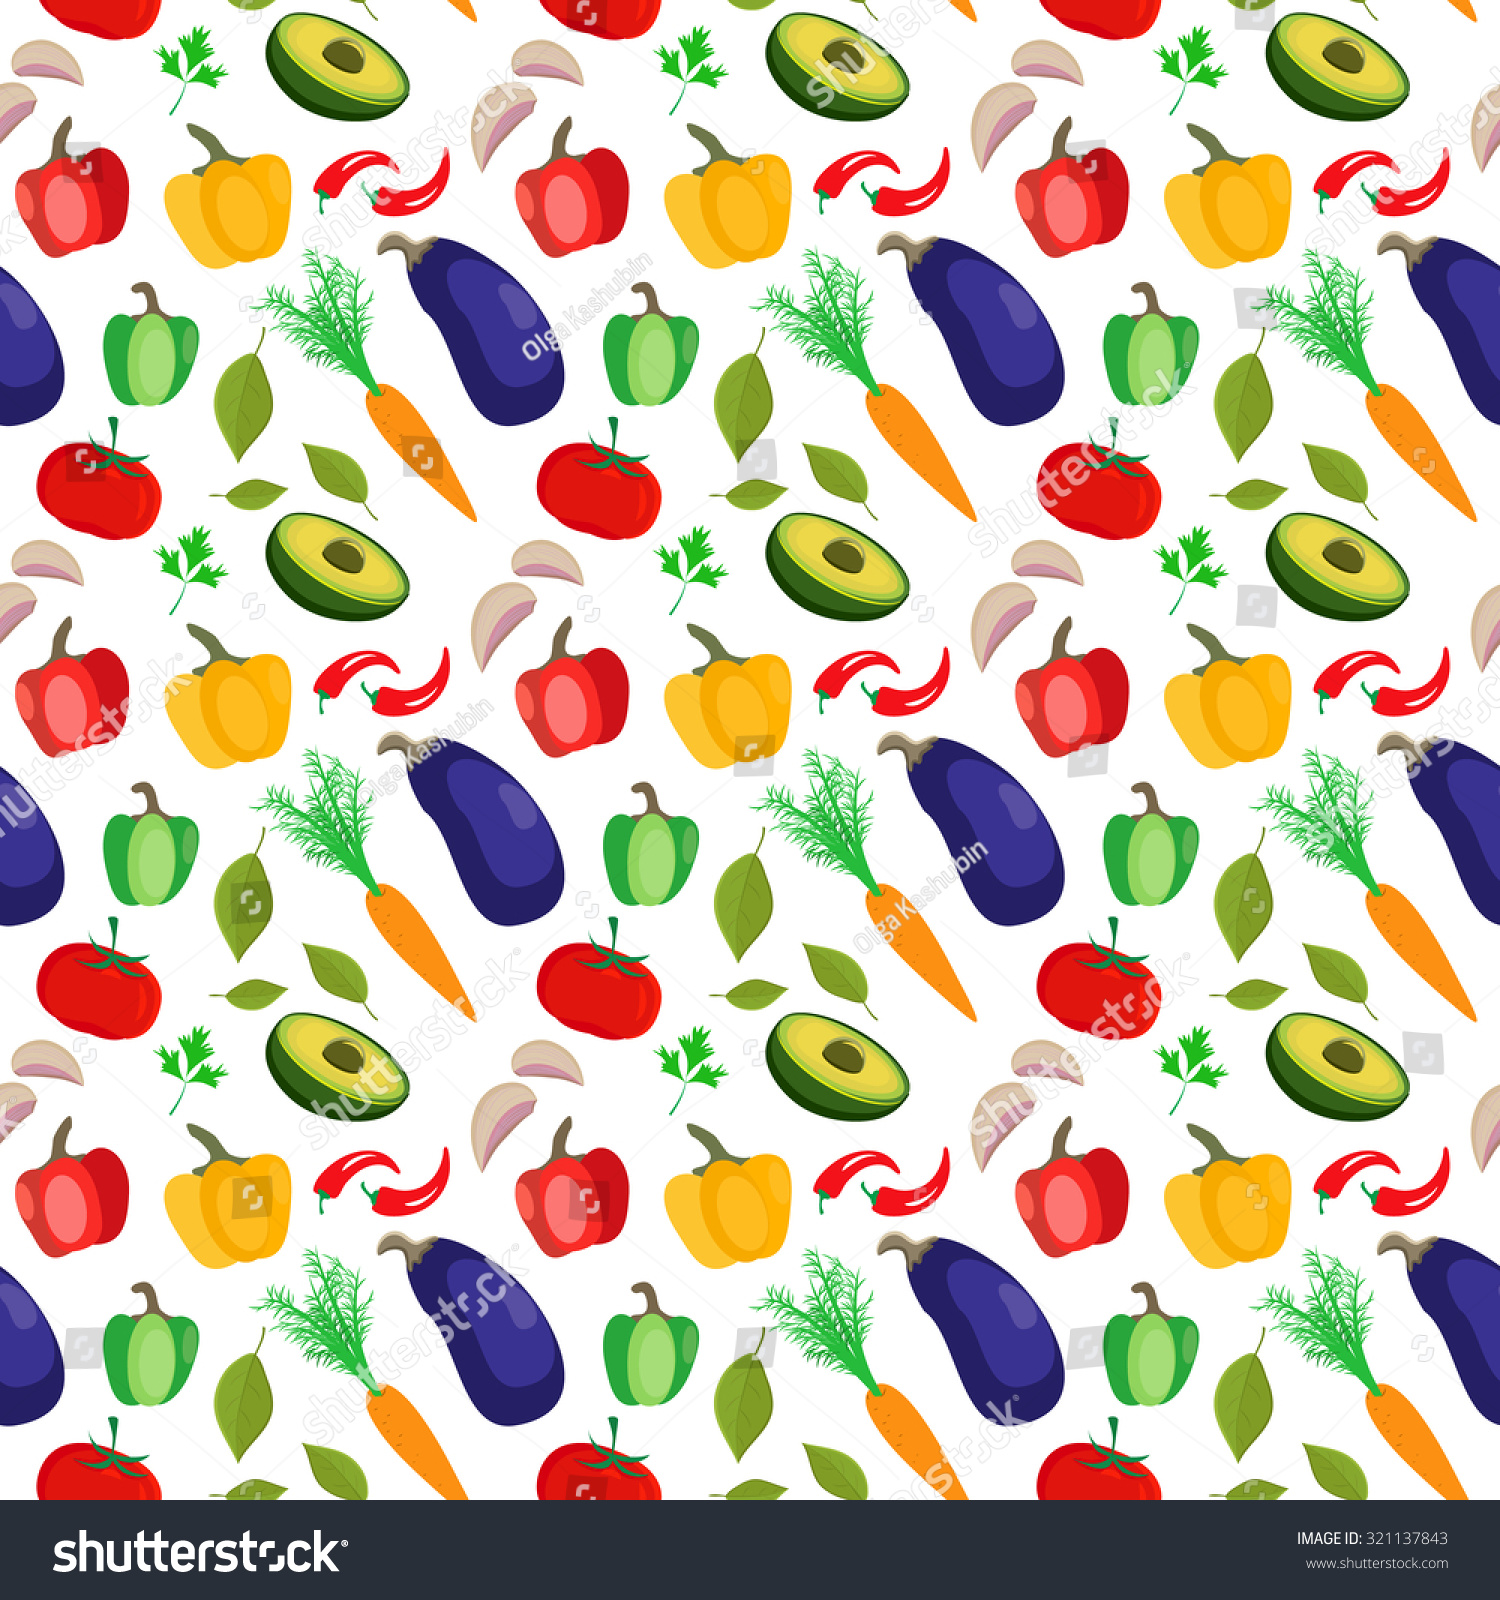 Scrapbook paper cooking - Seamless Pattern With Colorful Vegetables Cool Modern Background For Web Wallpapers Packaging Bag